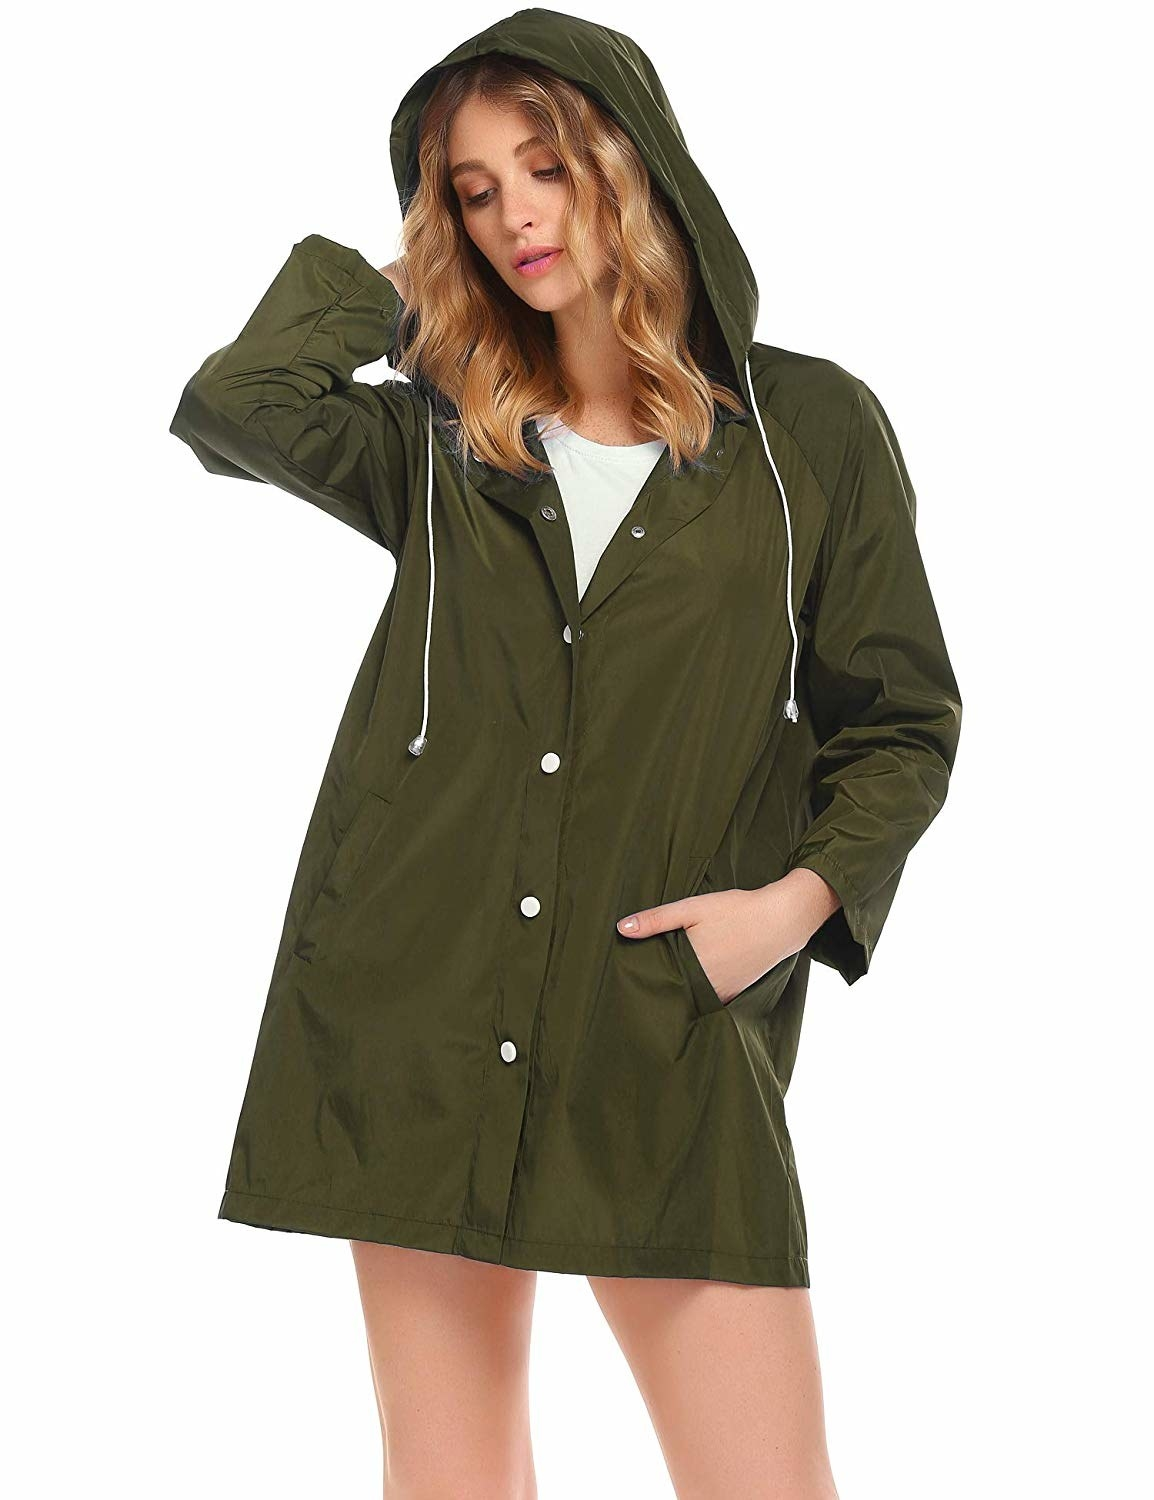 A model wearing the raincoat in army green